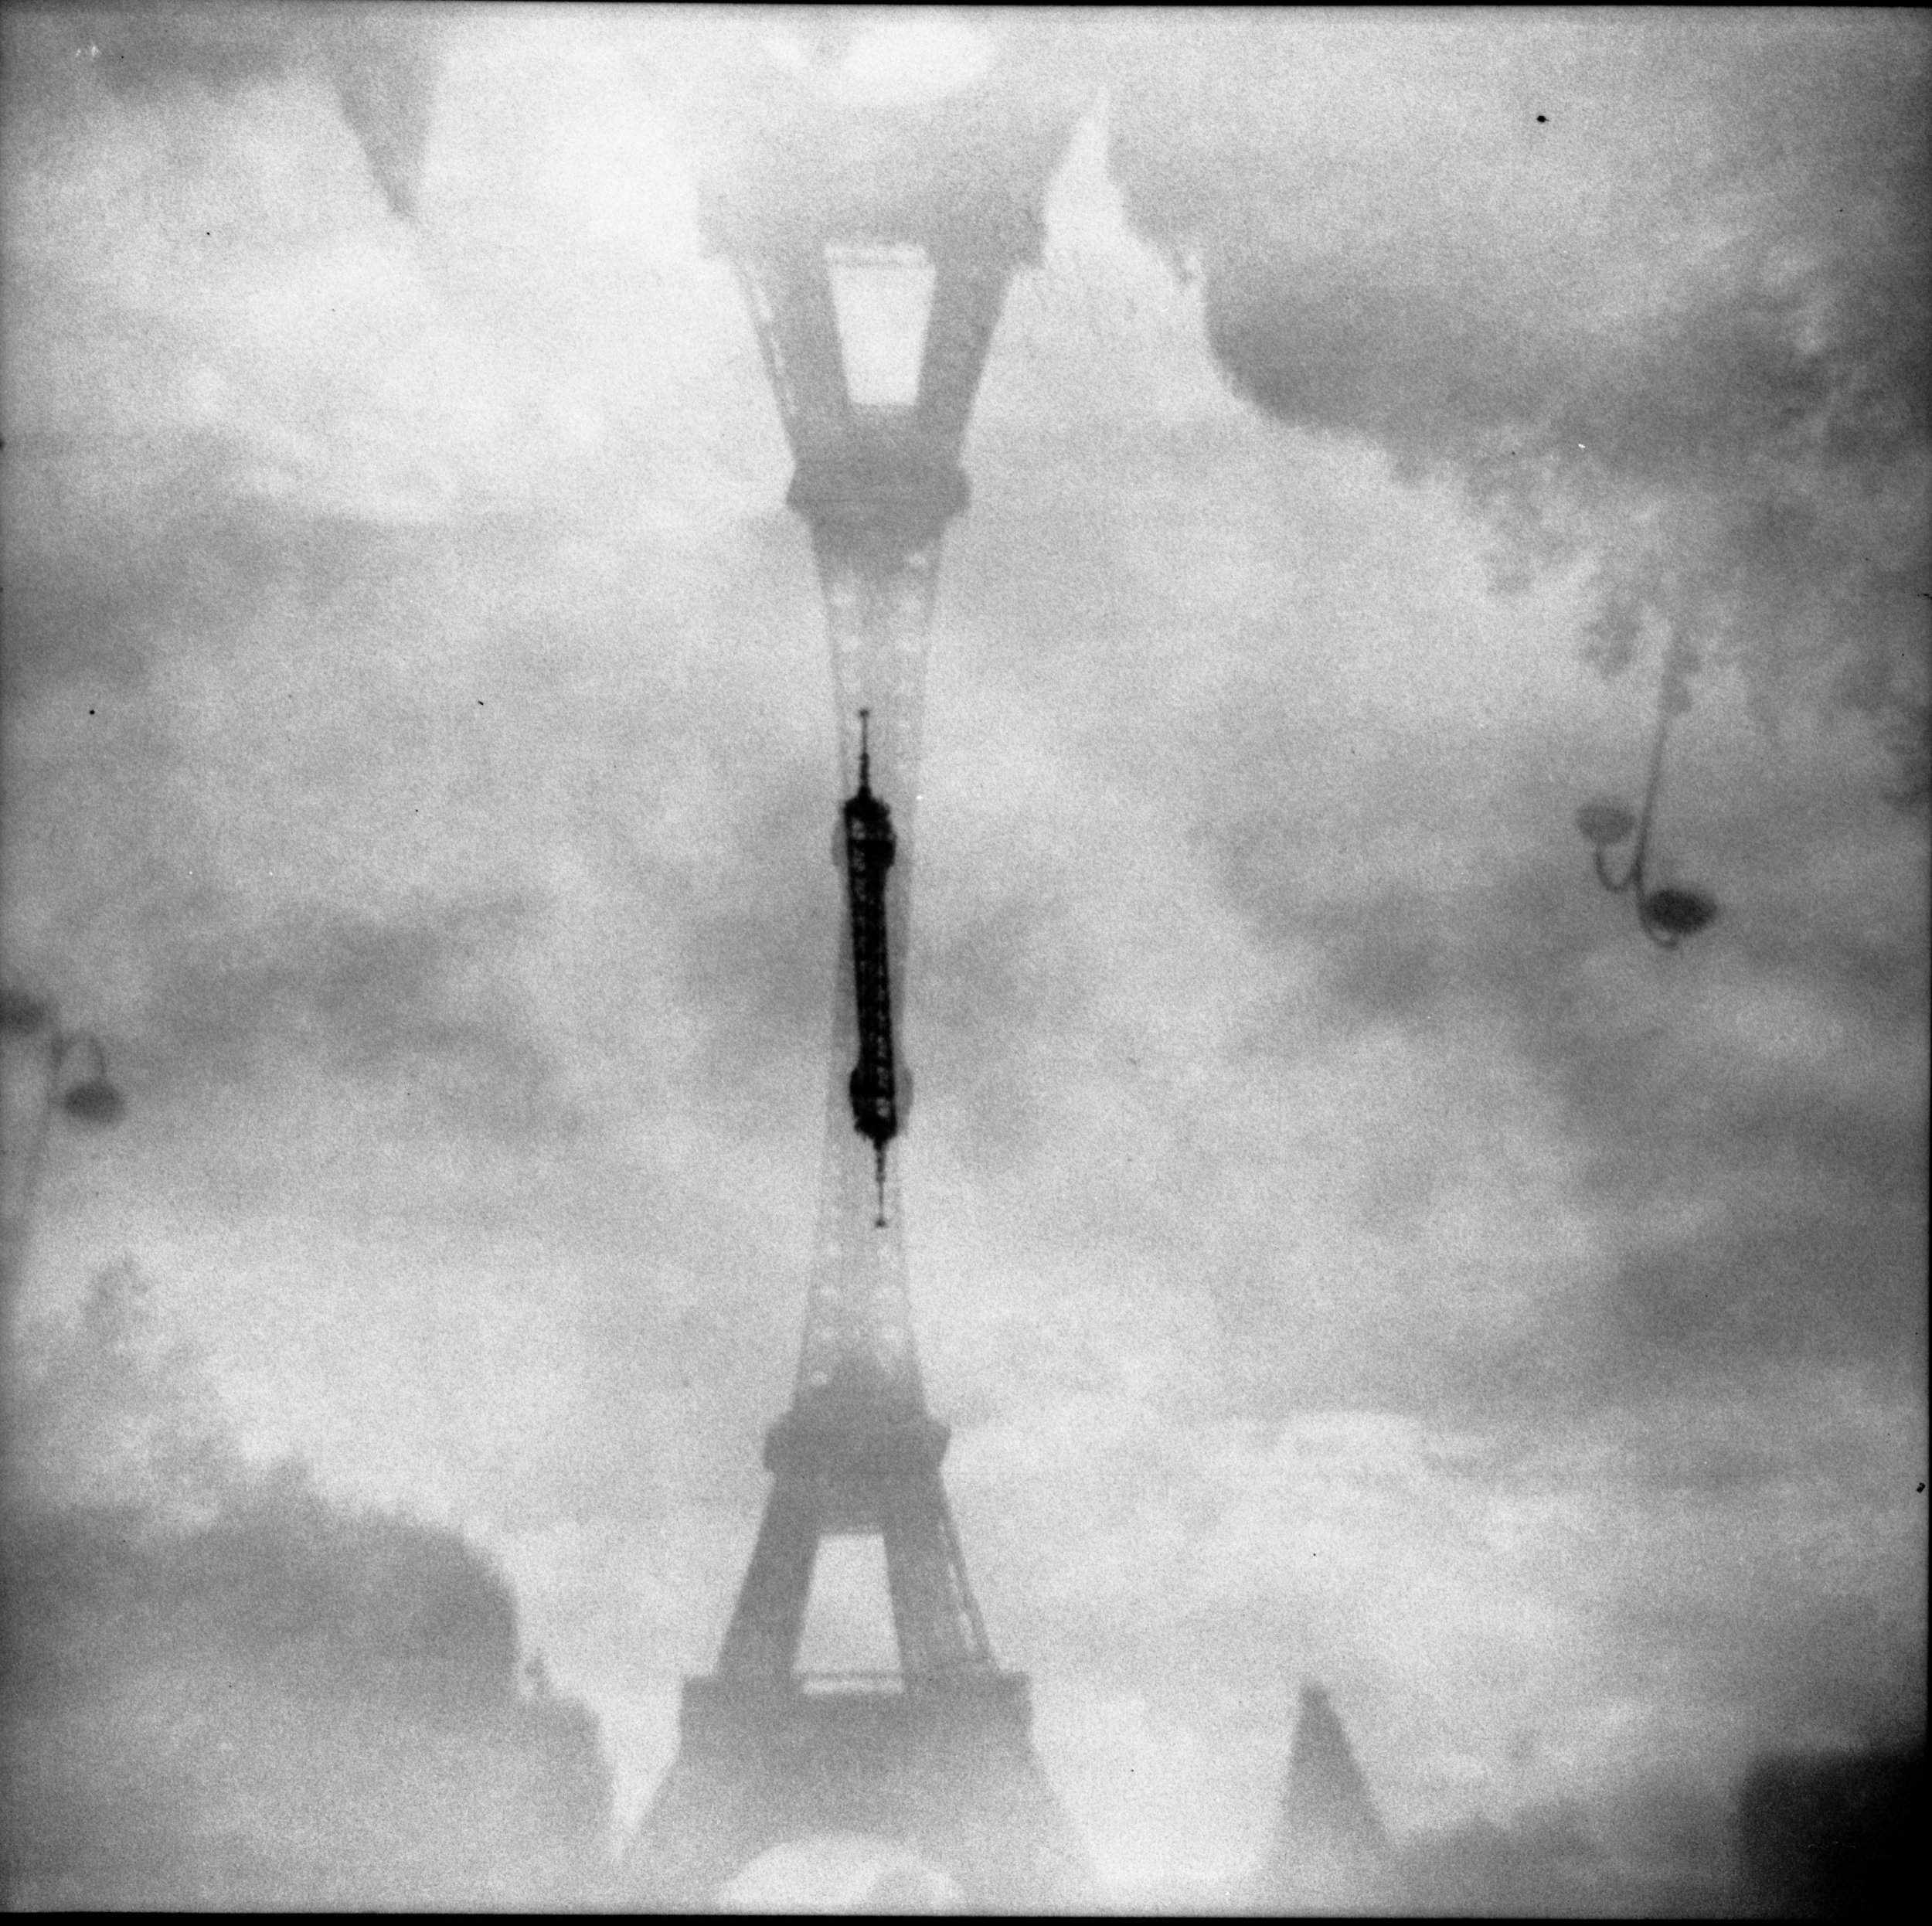 black and white double exposure of the Tour Eiffel